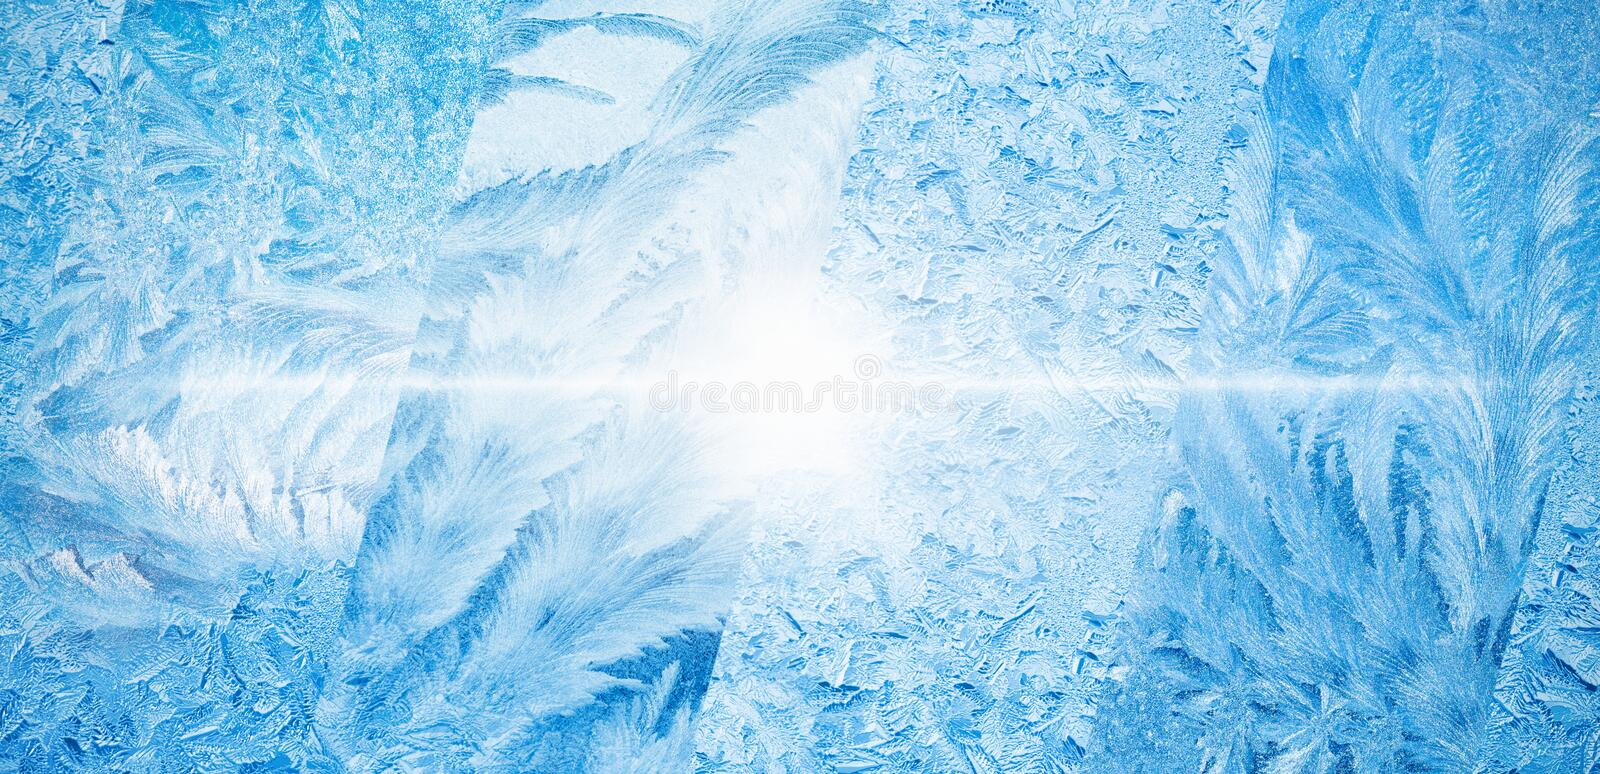 Wide blue winter background, collage of frozen icy windows. Cold sunny weather, bright sun shines through frozen window, weather forecast concept stock images